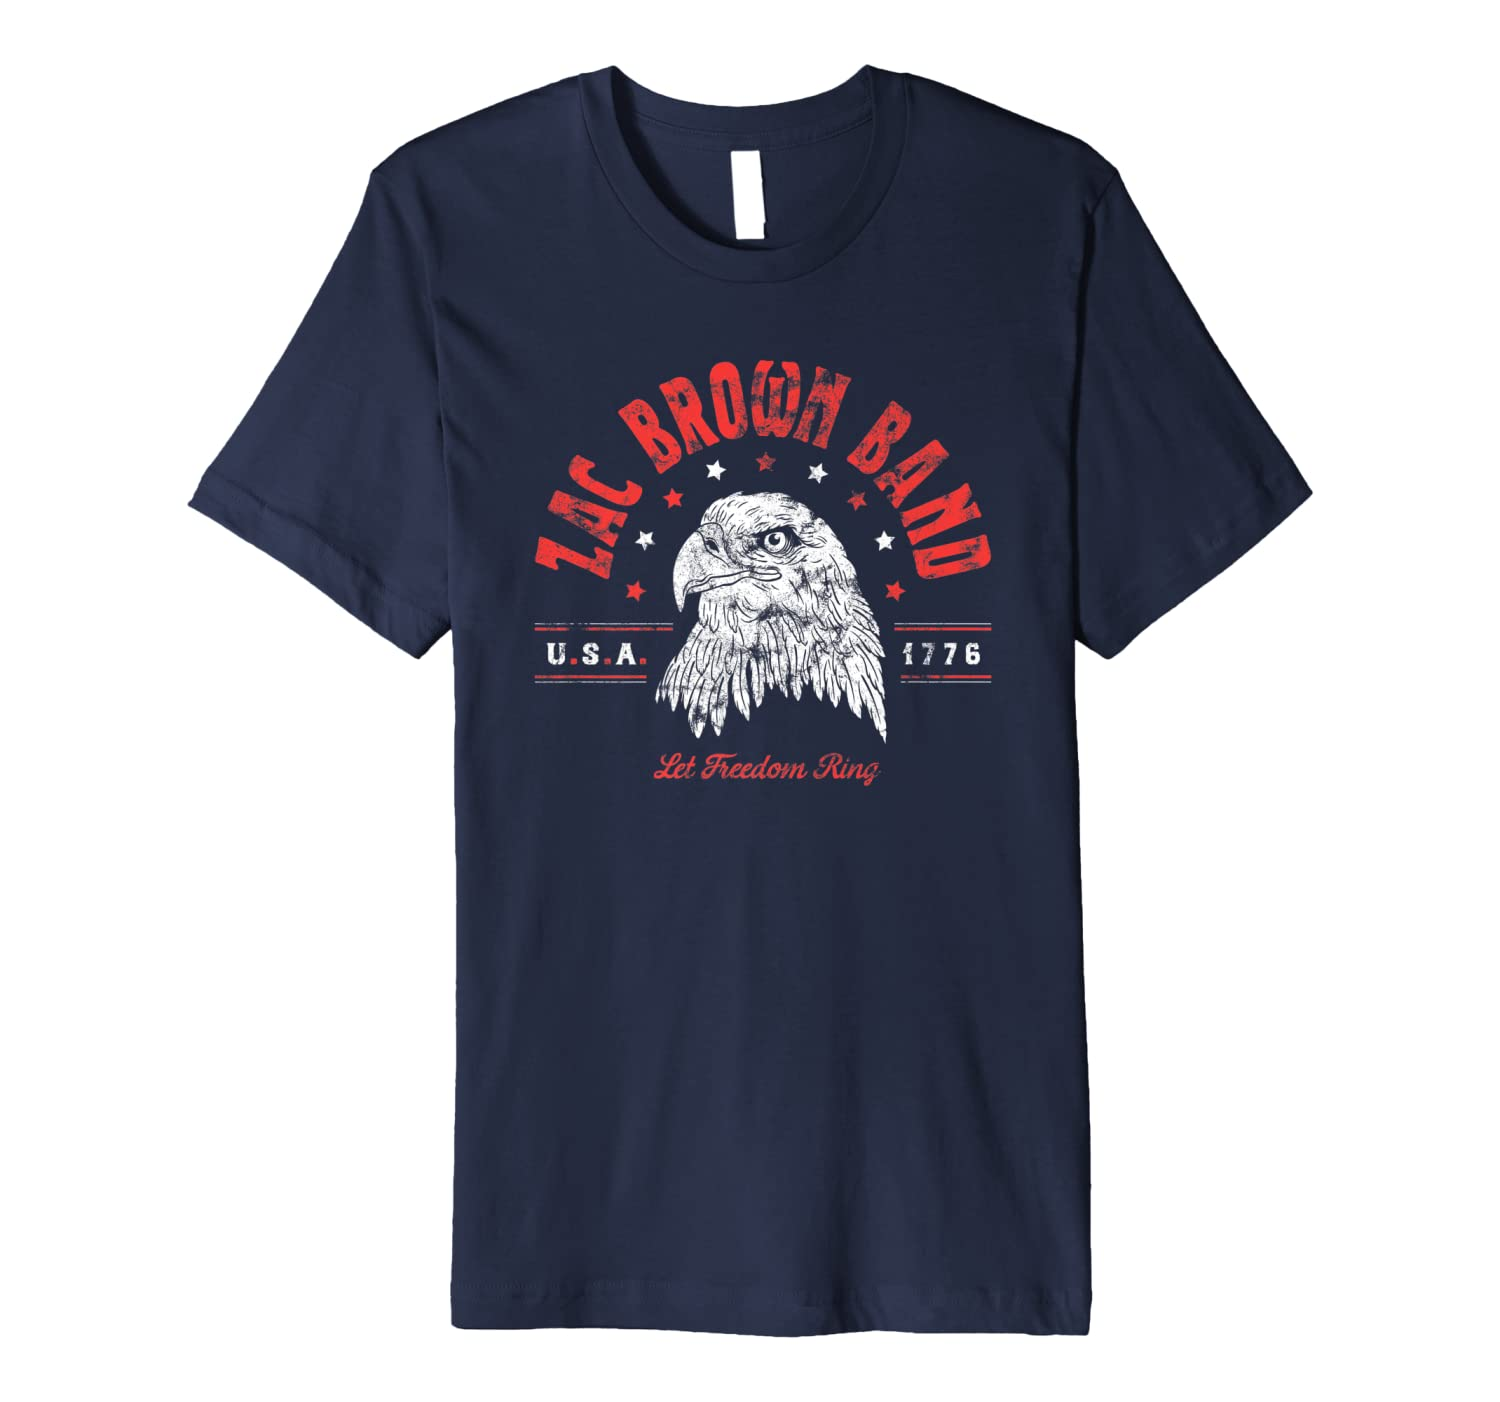 Zac Brown Band - Veterans Day Eagle T-shirt